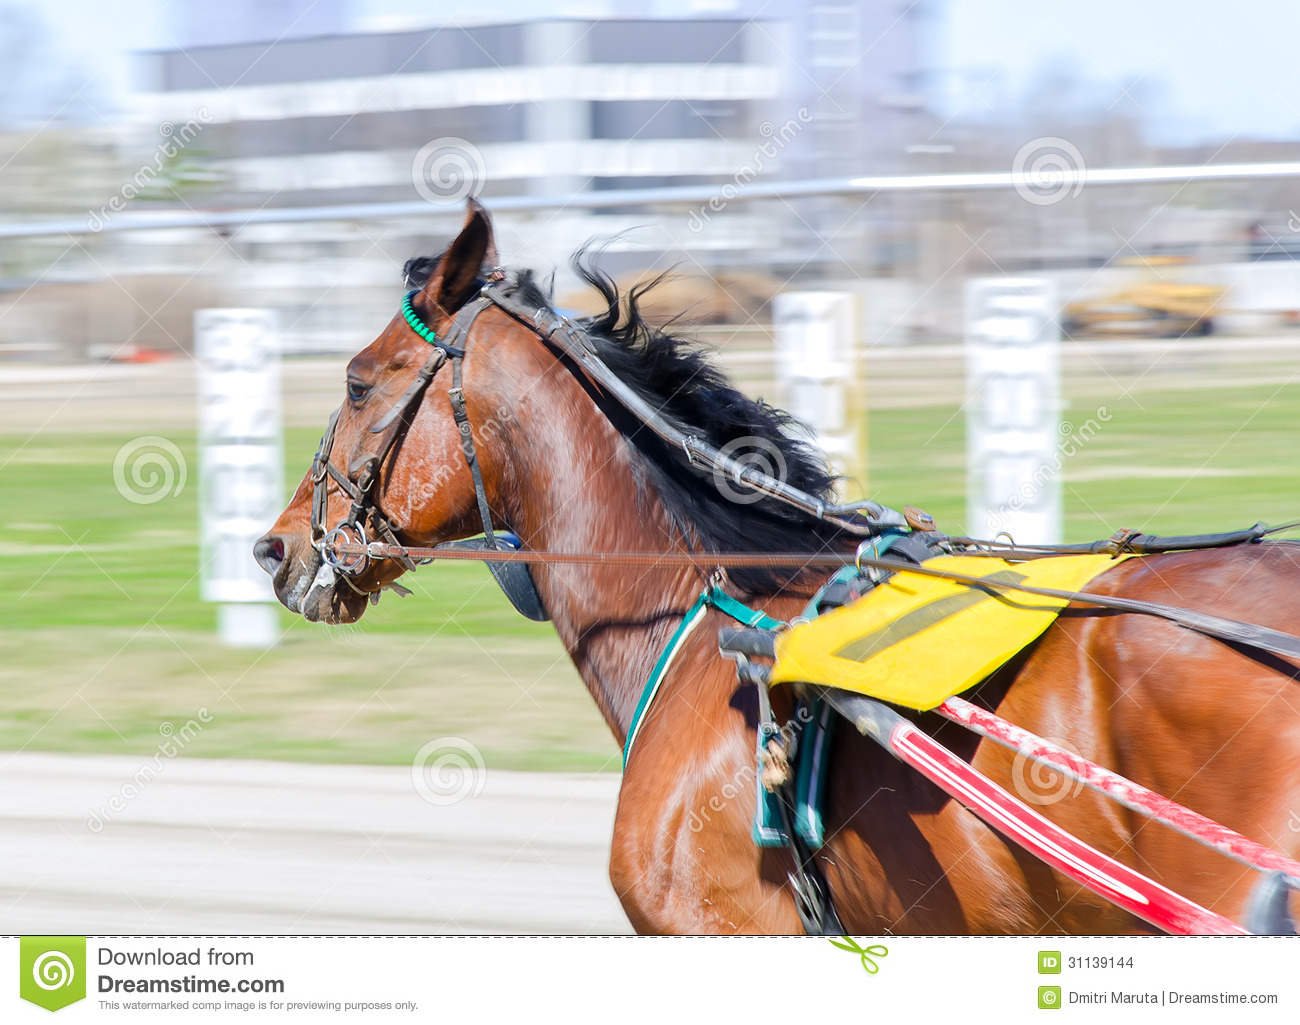 Harness racing betting terms defined binary options affiliates program